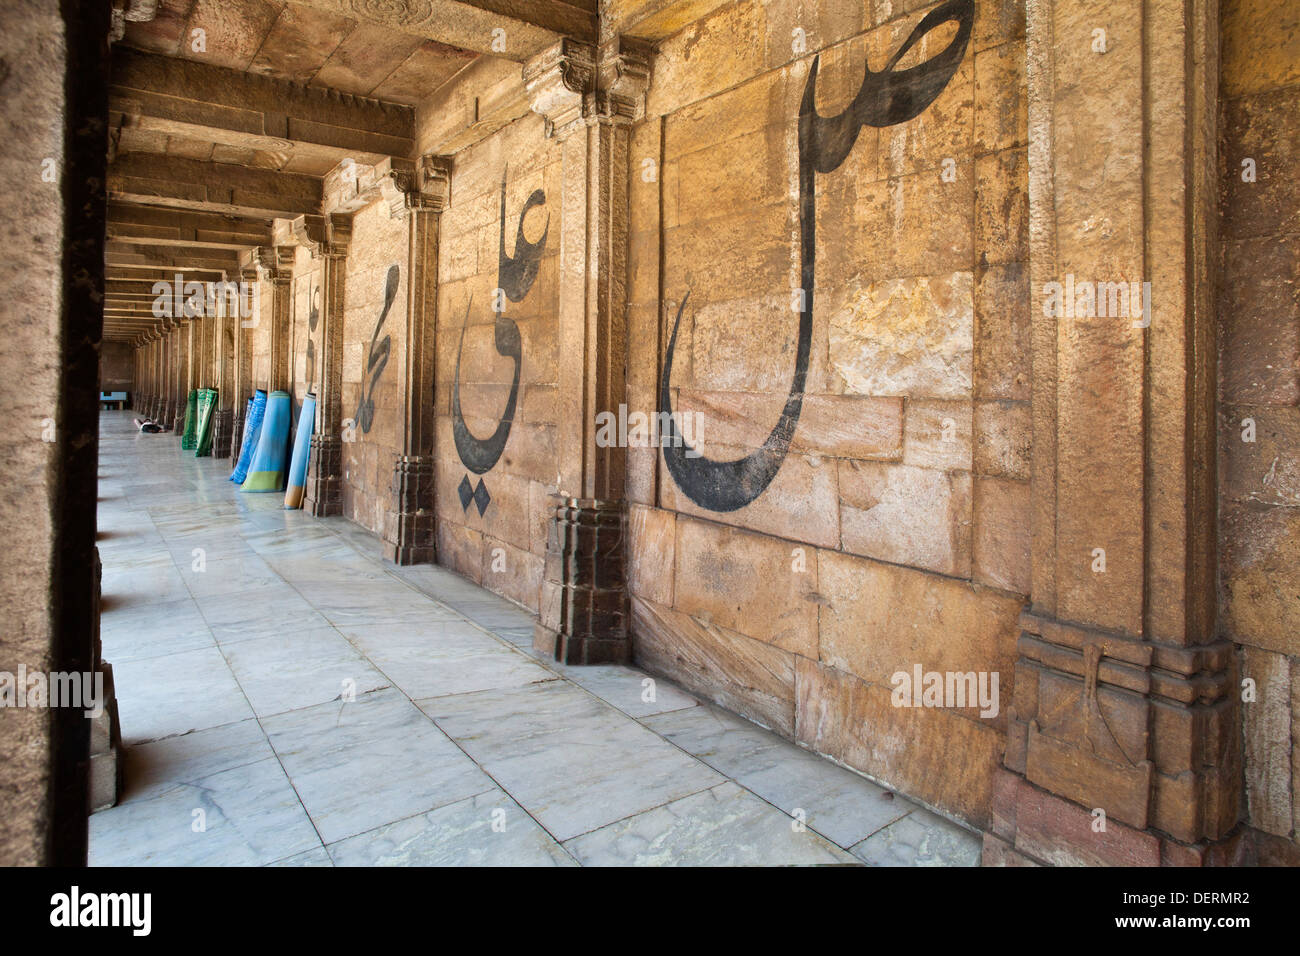 Corridor of a mosque, Jama Masjid, Ahmedabad, Gujarat, India - Stock Image